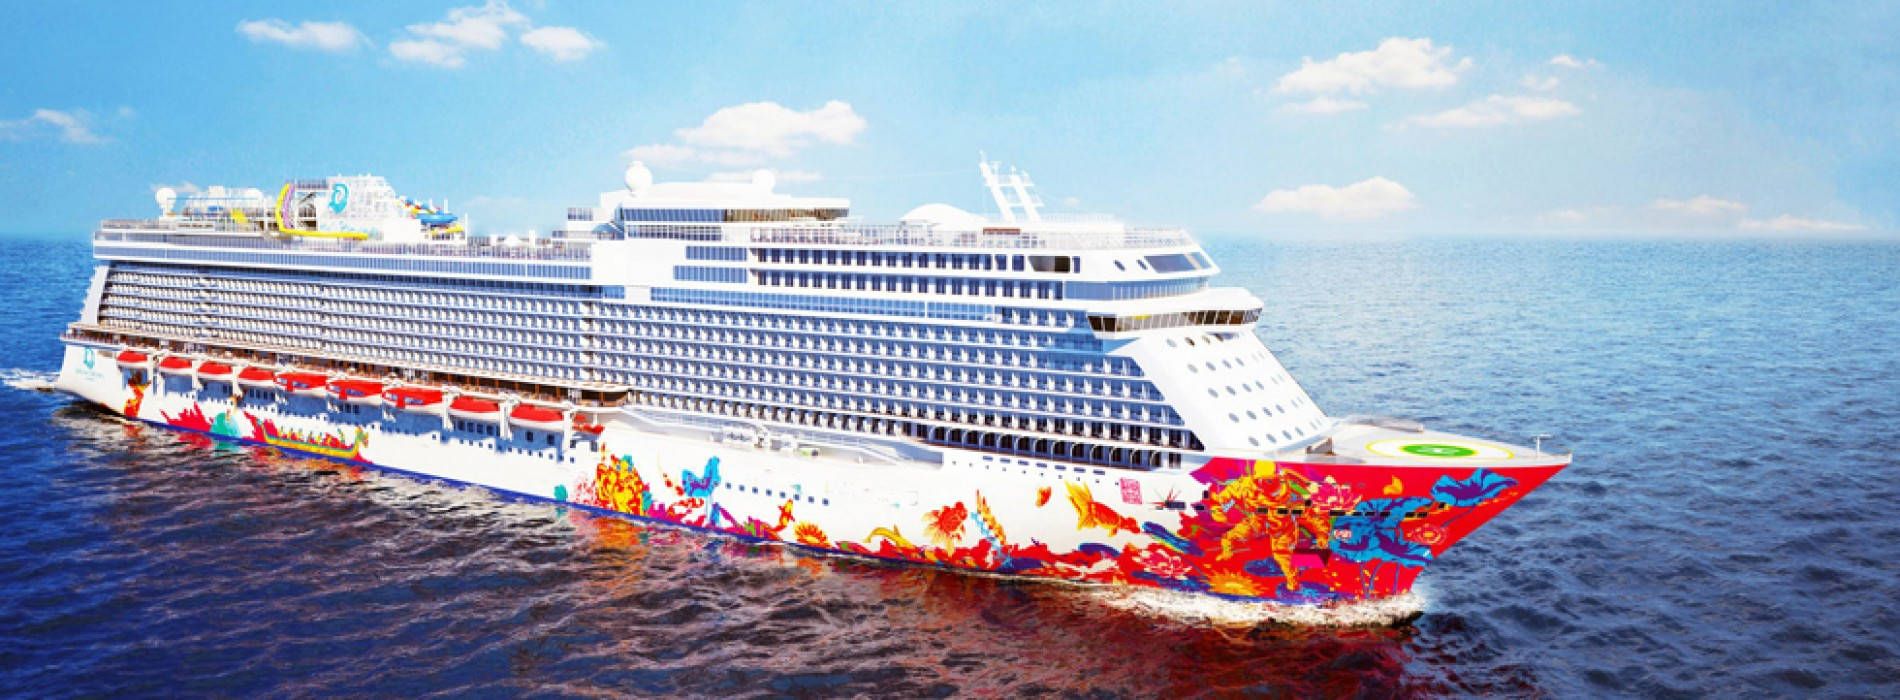 Get ready for a daily cruise ship that will ferry you from Mumbai to Goa in only 7 hours